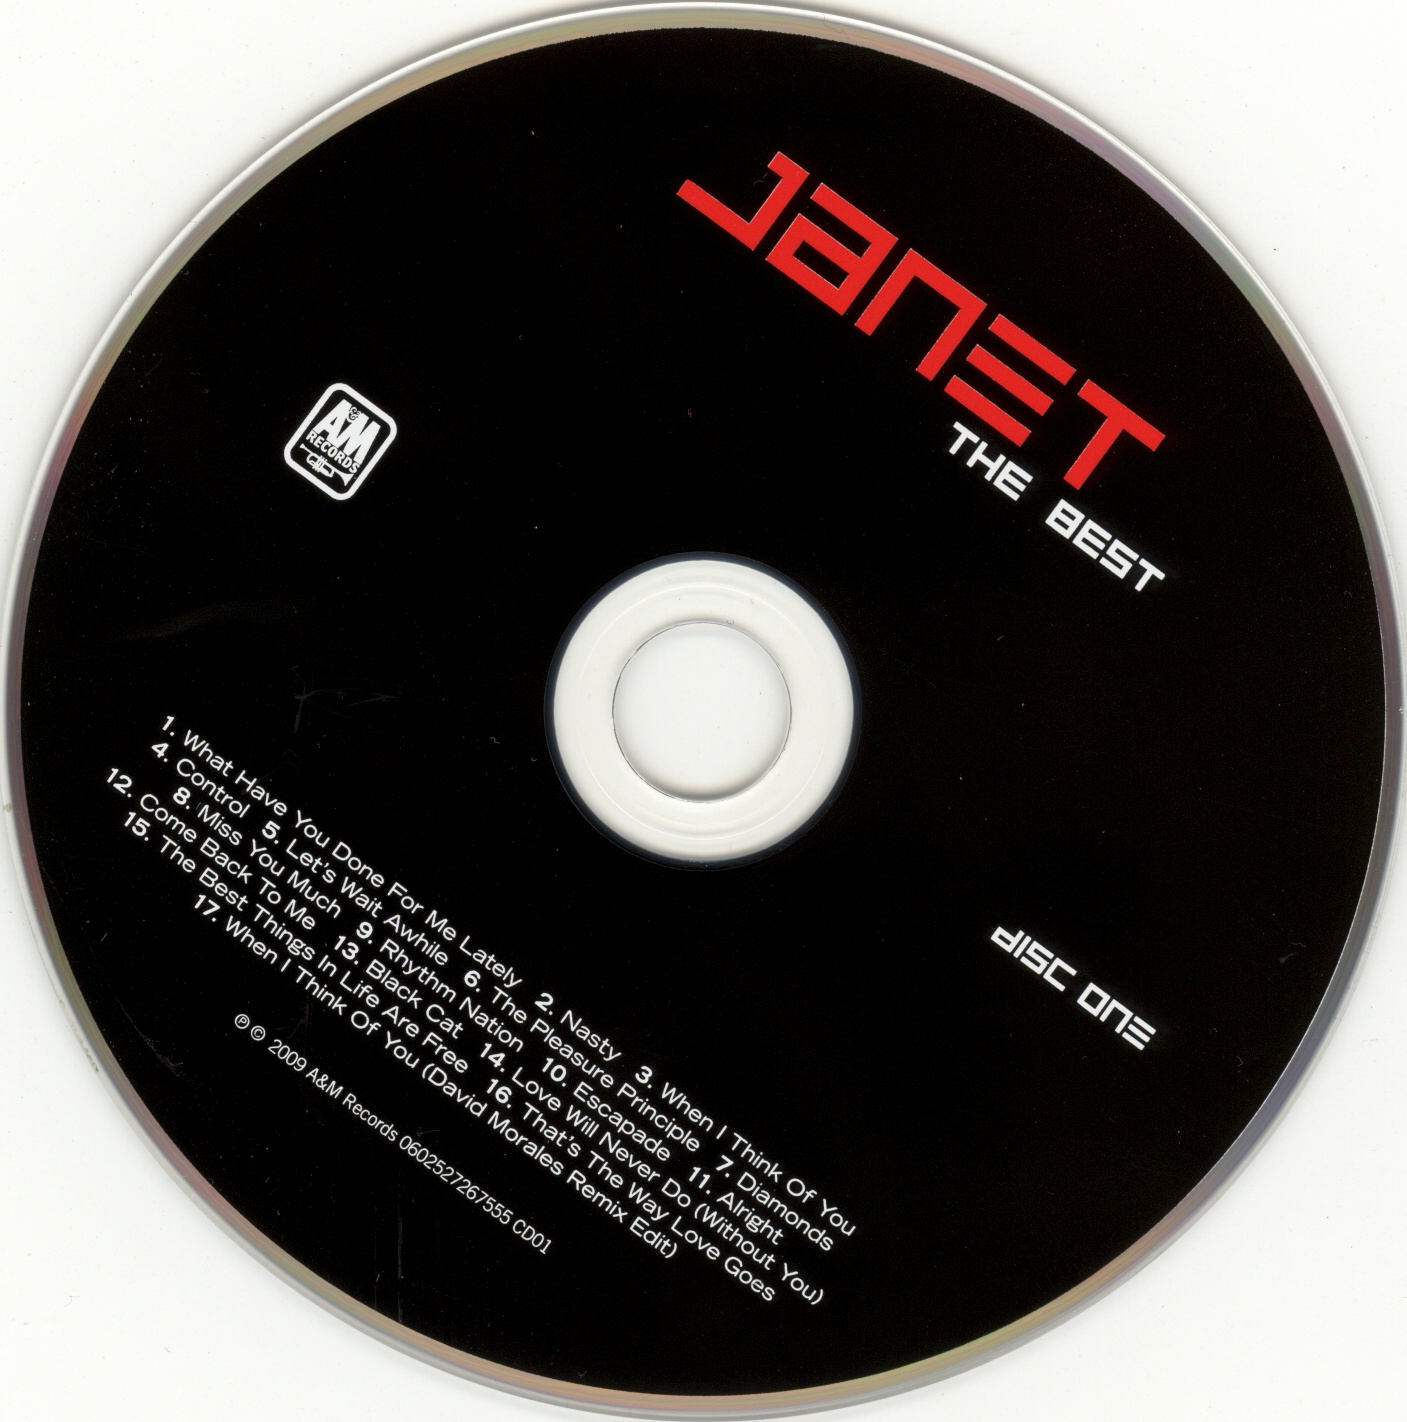 Janet Jackson - The Best - CD (1-2)